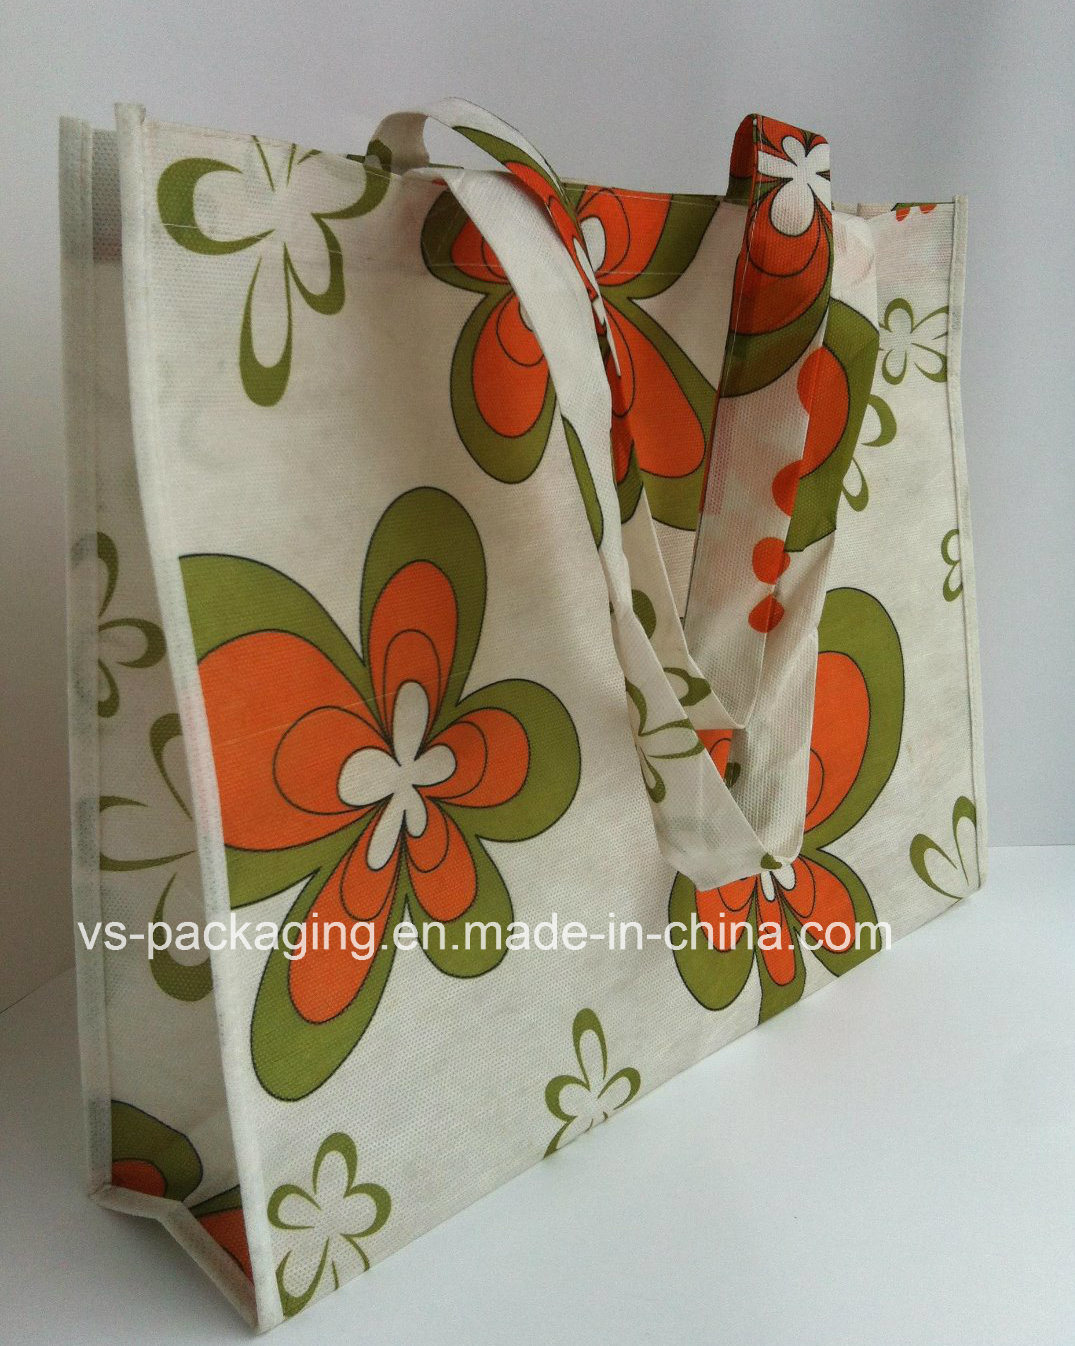 Non Woven Bag for Advertising